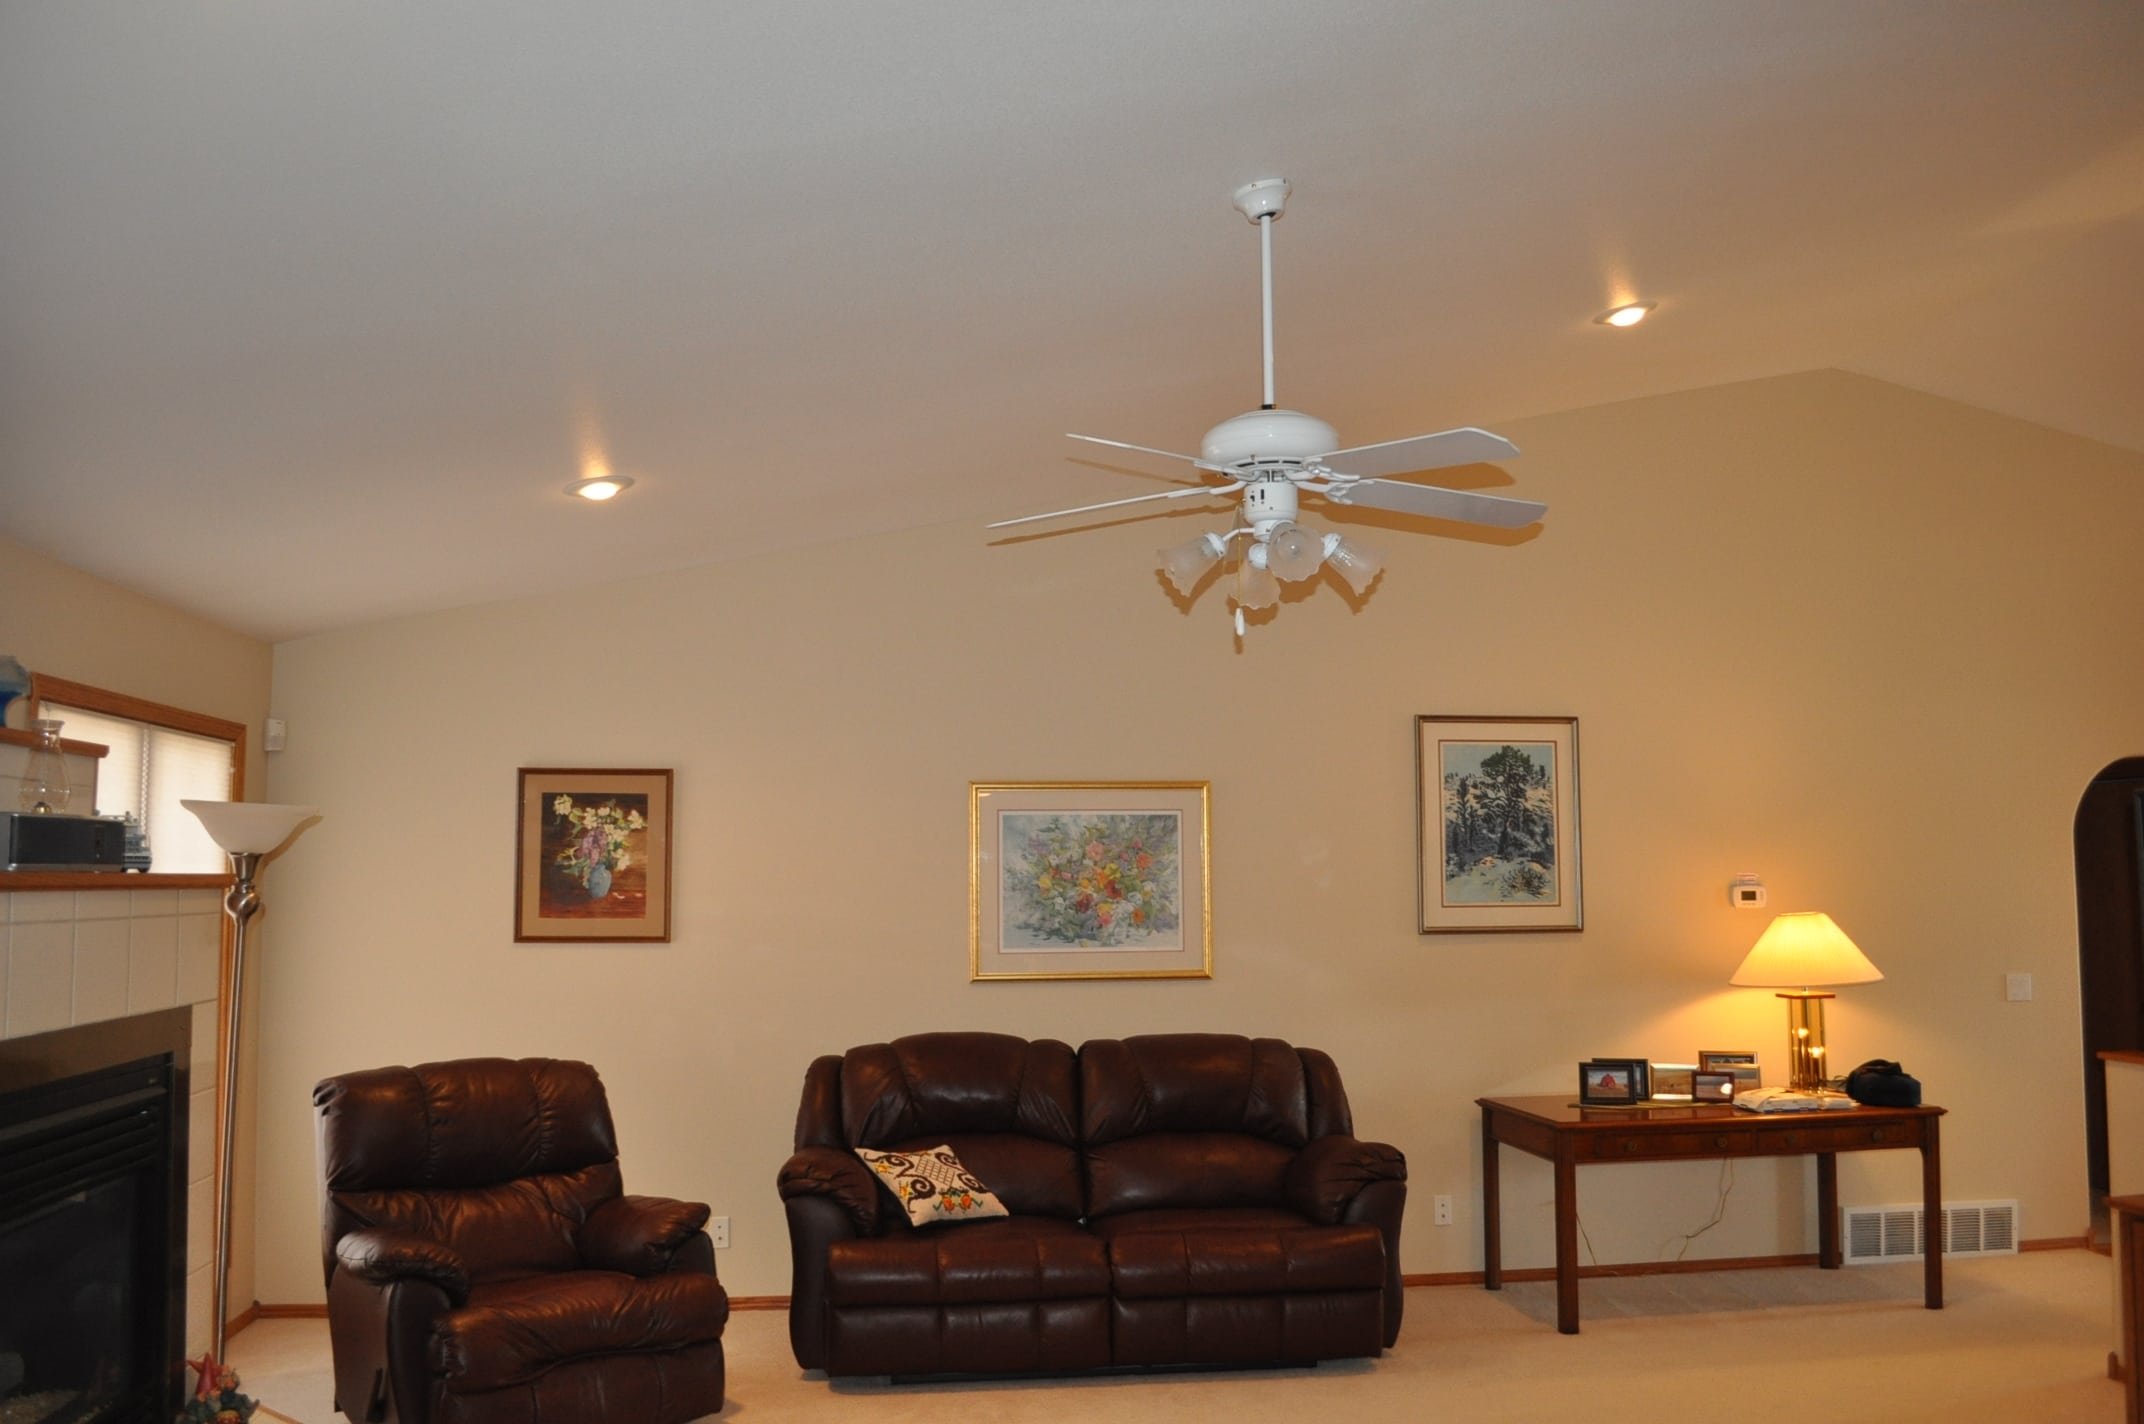 Going Rate For Painting Interior Of House